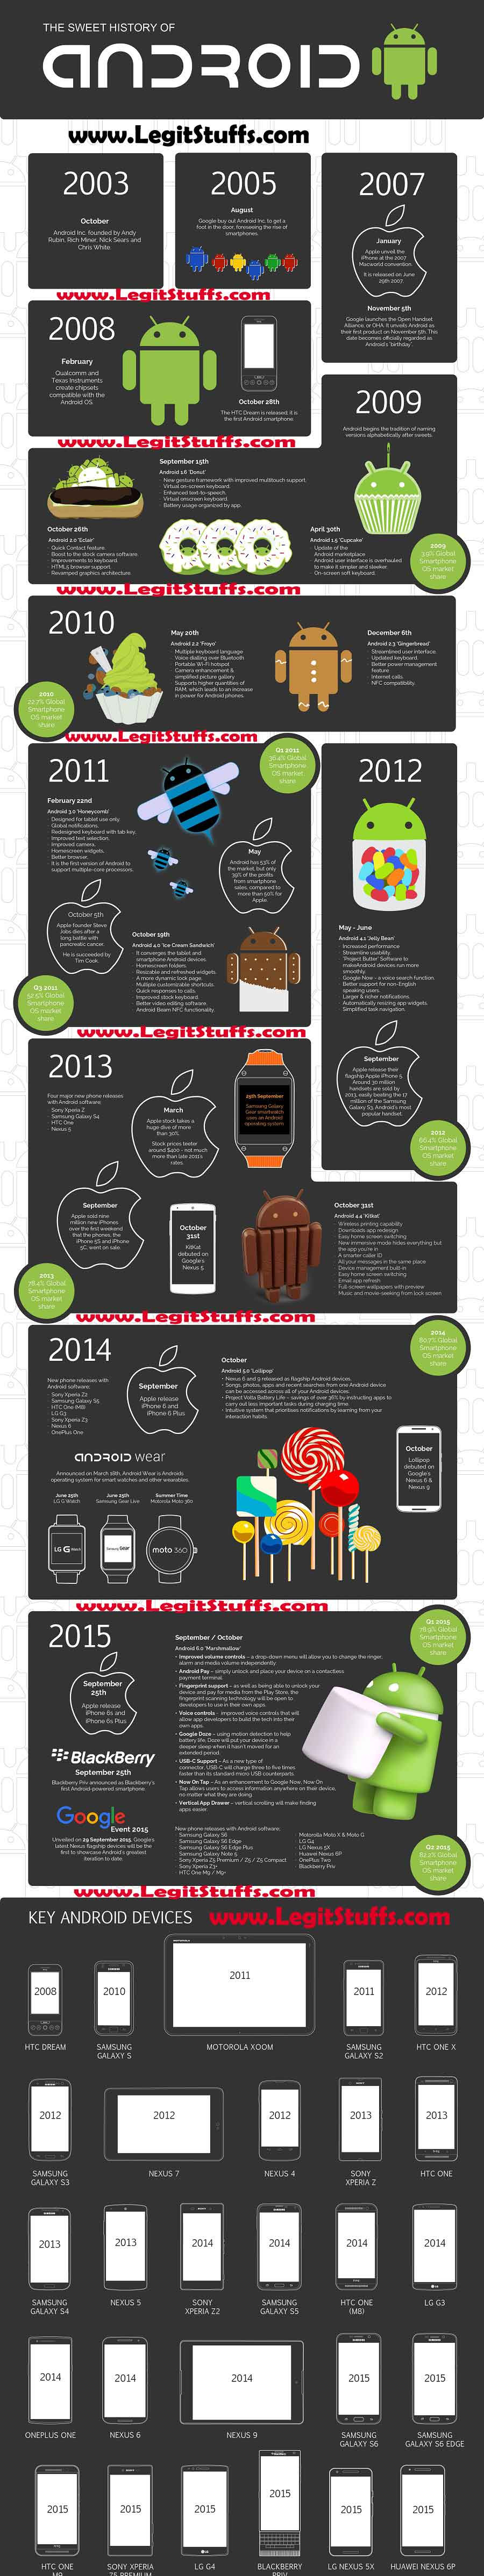 who owns android, who invented or developed android, history of android, all time best seller android phone